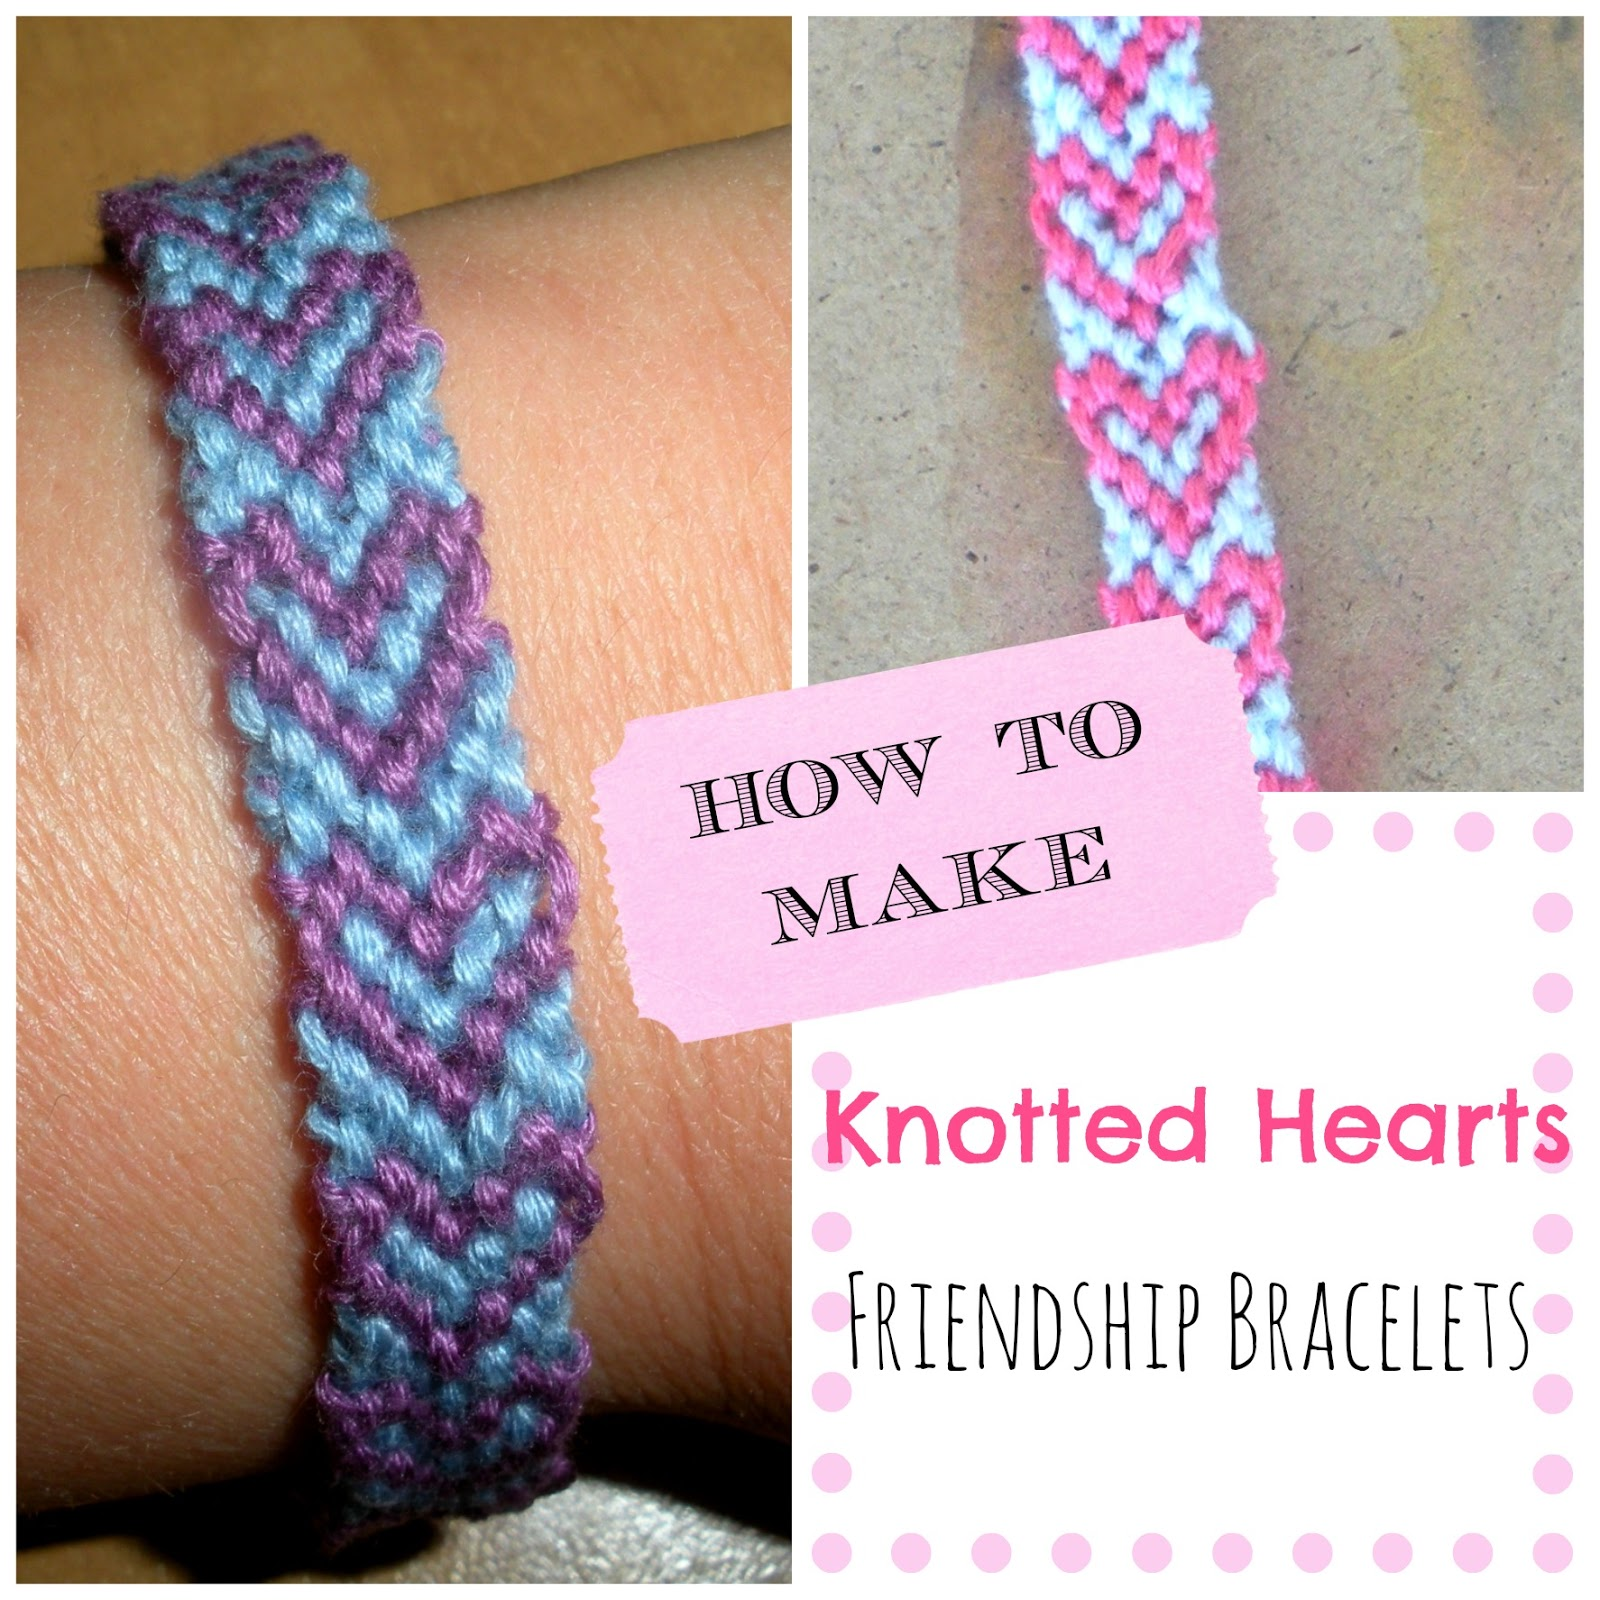 Paper Tape & Pins: How To Make Knotted Hearts Friendship Bracelets